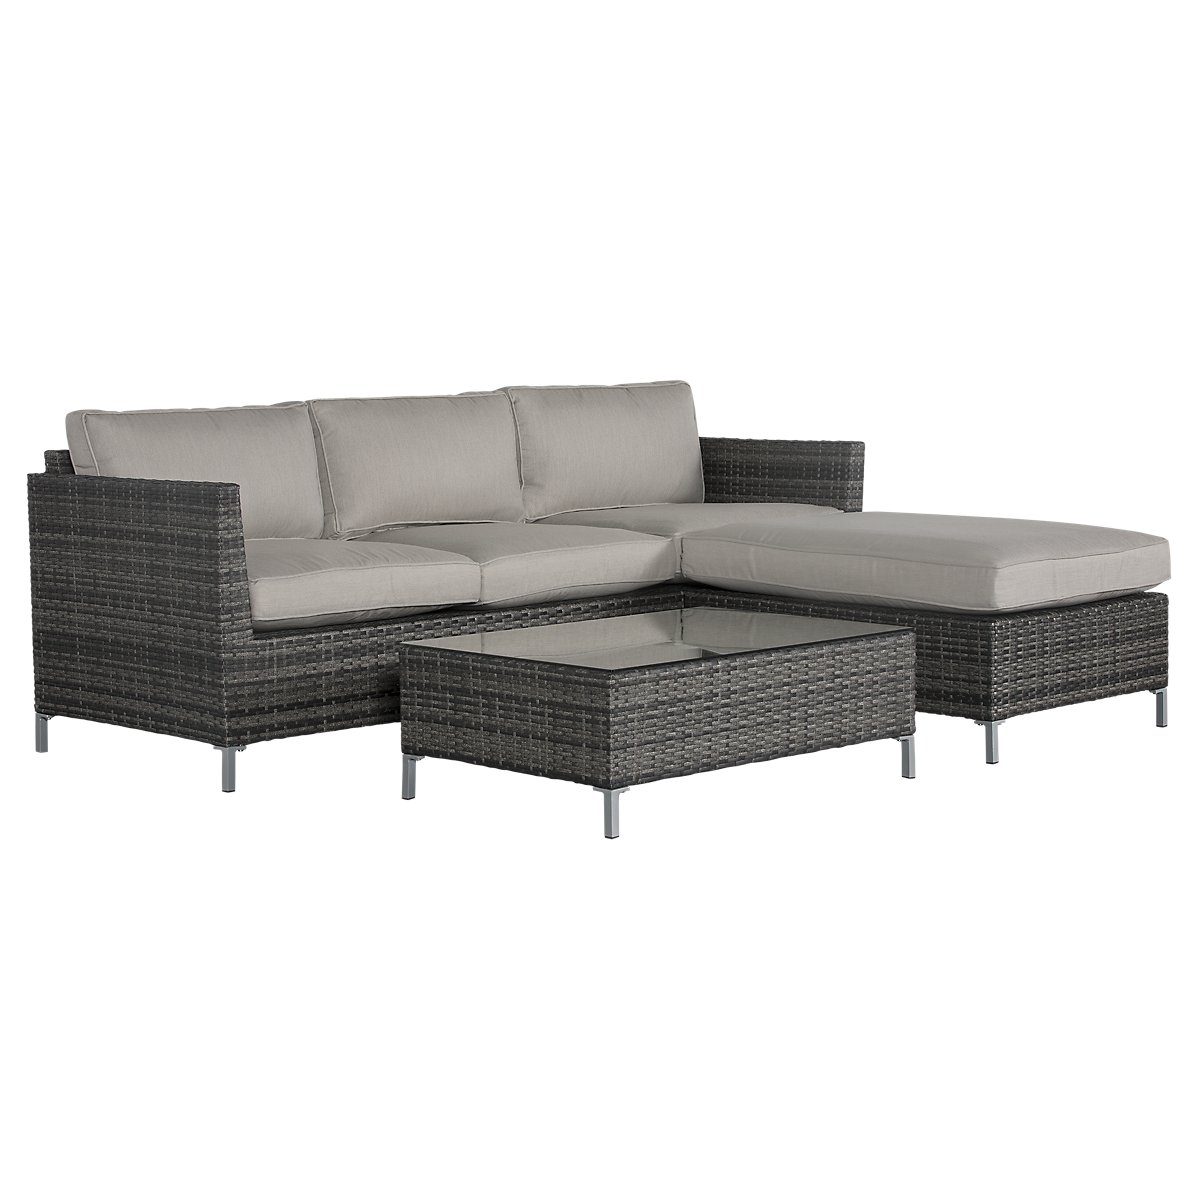 City Furniture: Monterey Gray Outdoor Living Room Set